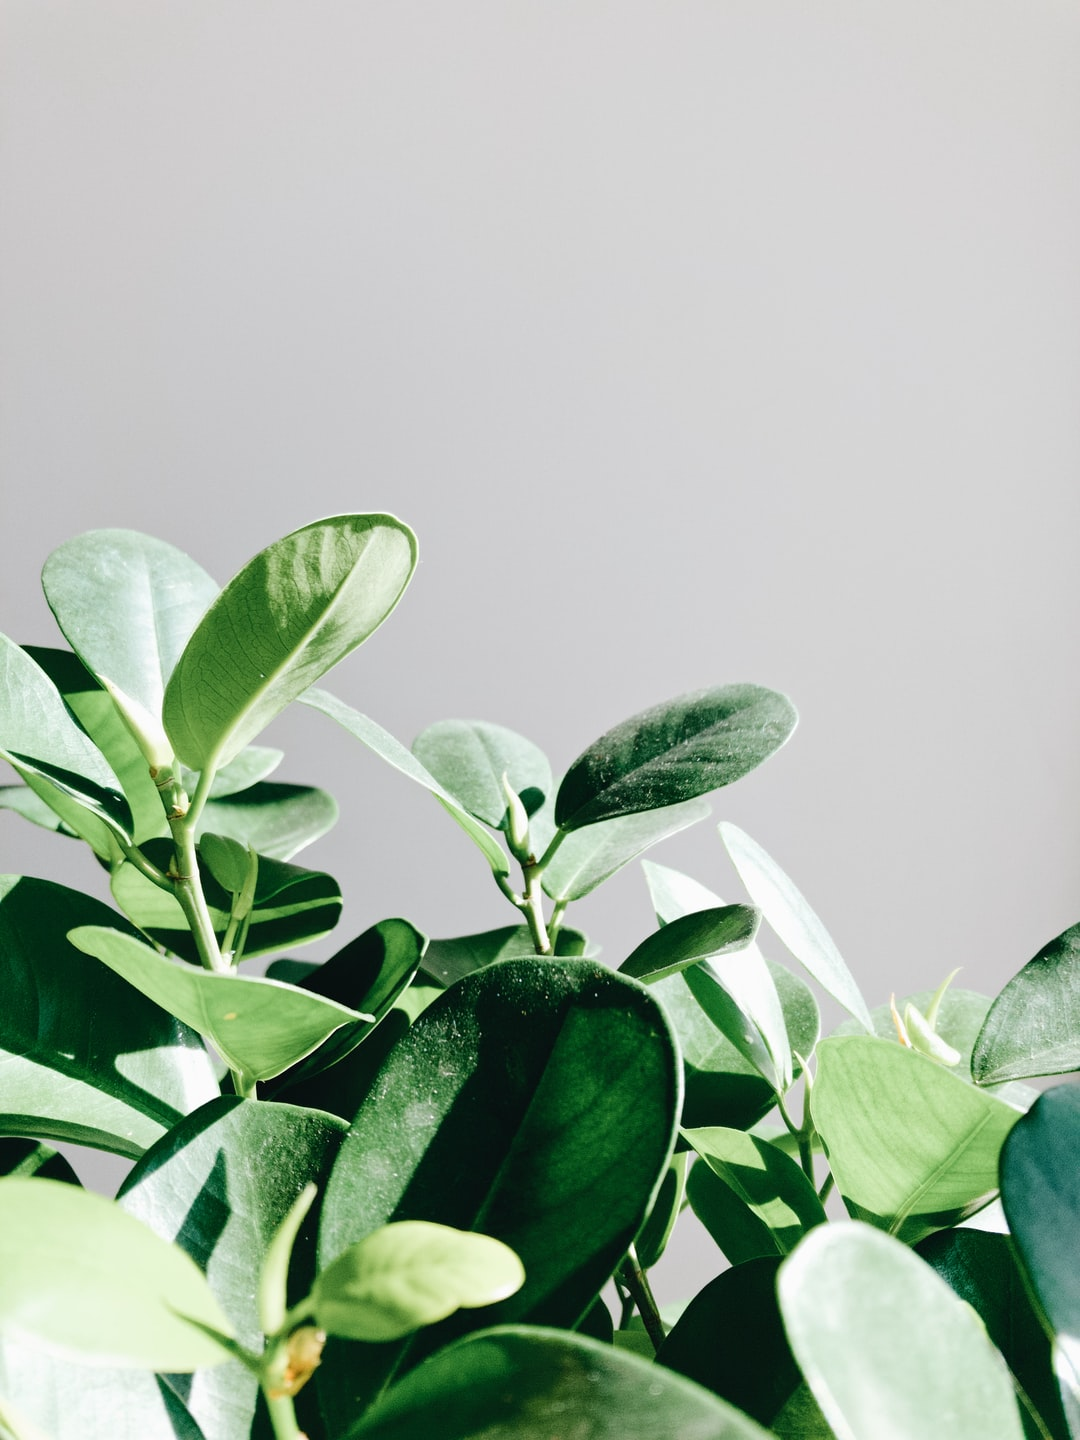 Plants. Leaves of the Ficus